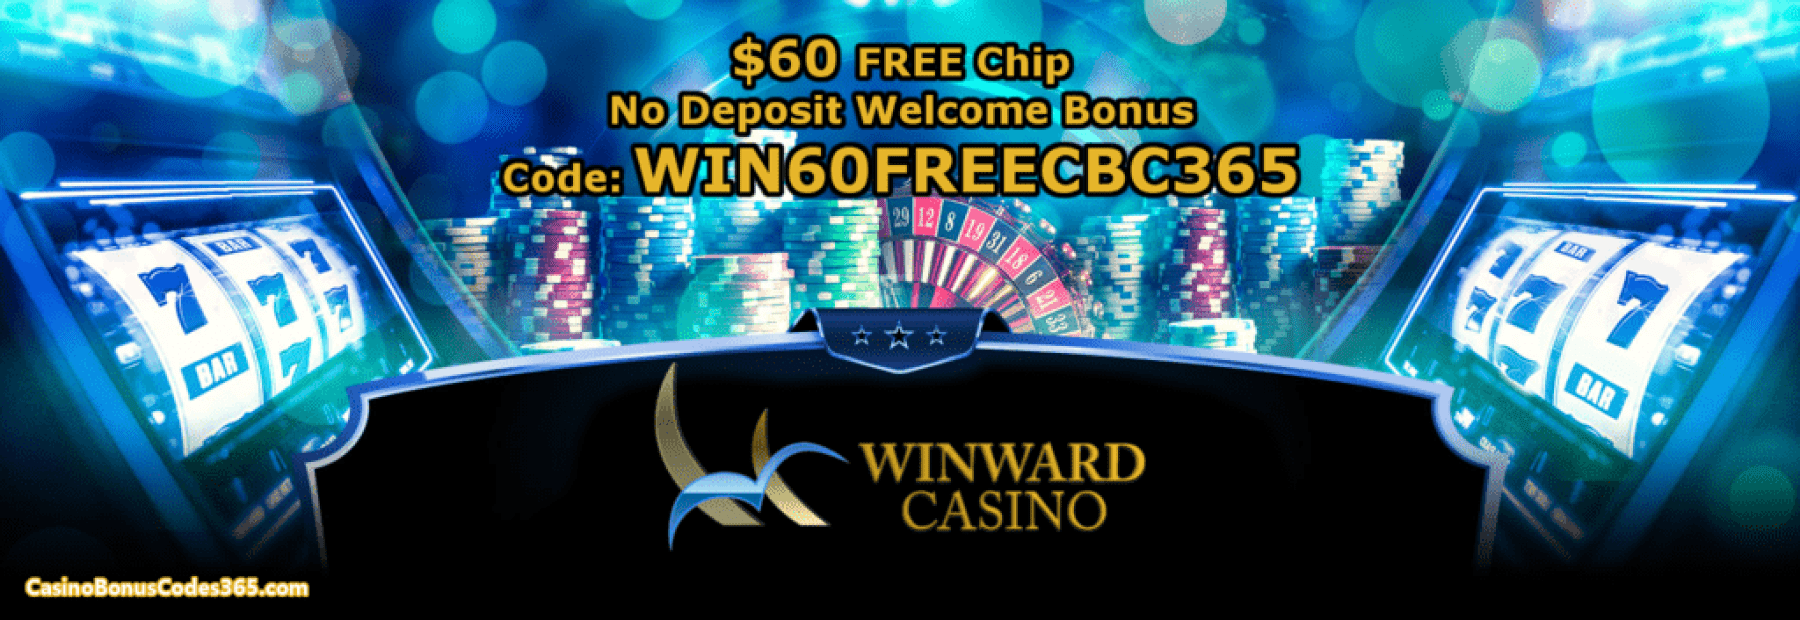 latest casino bonus free chip